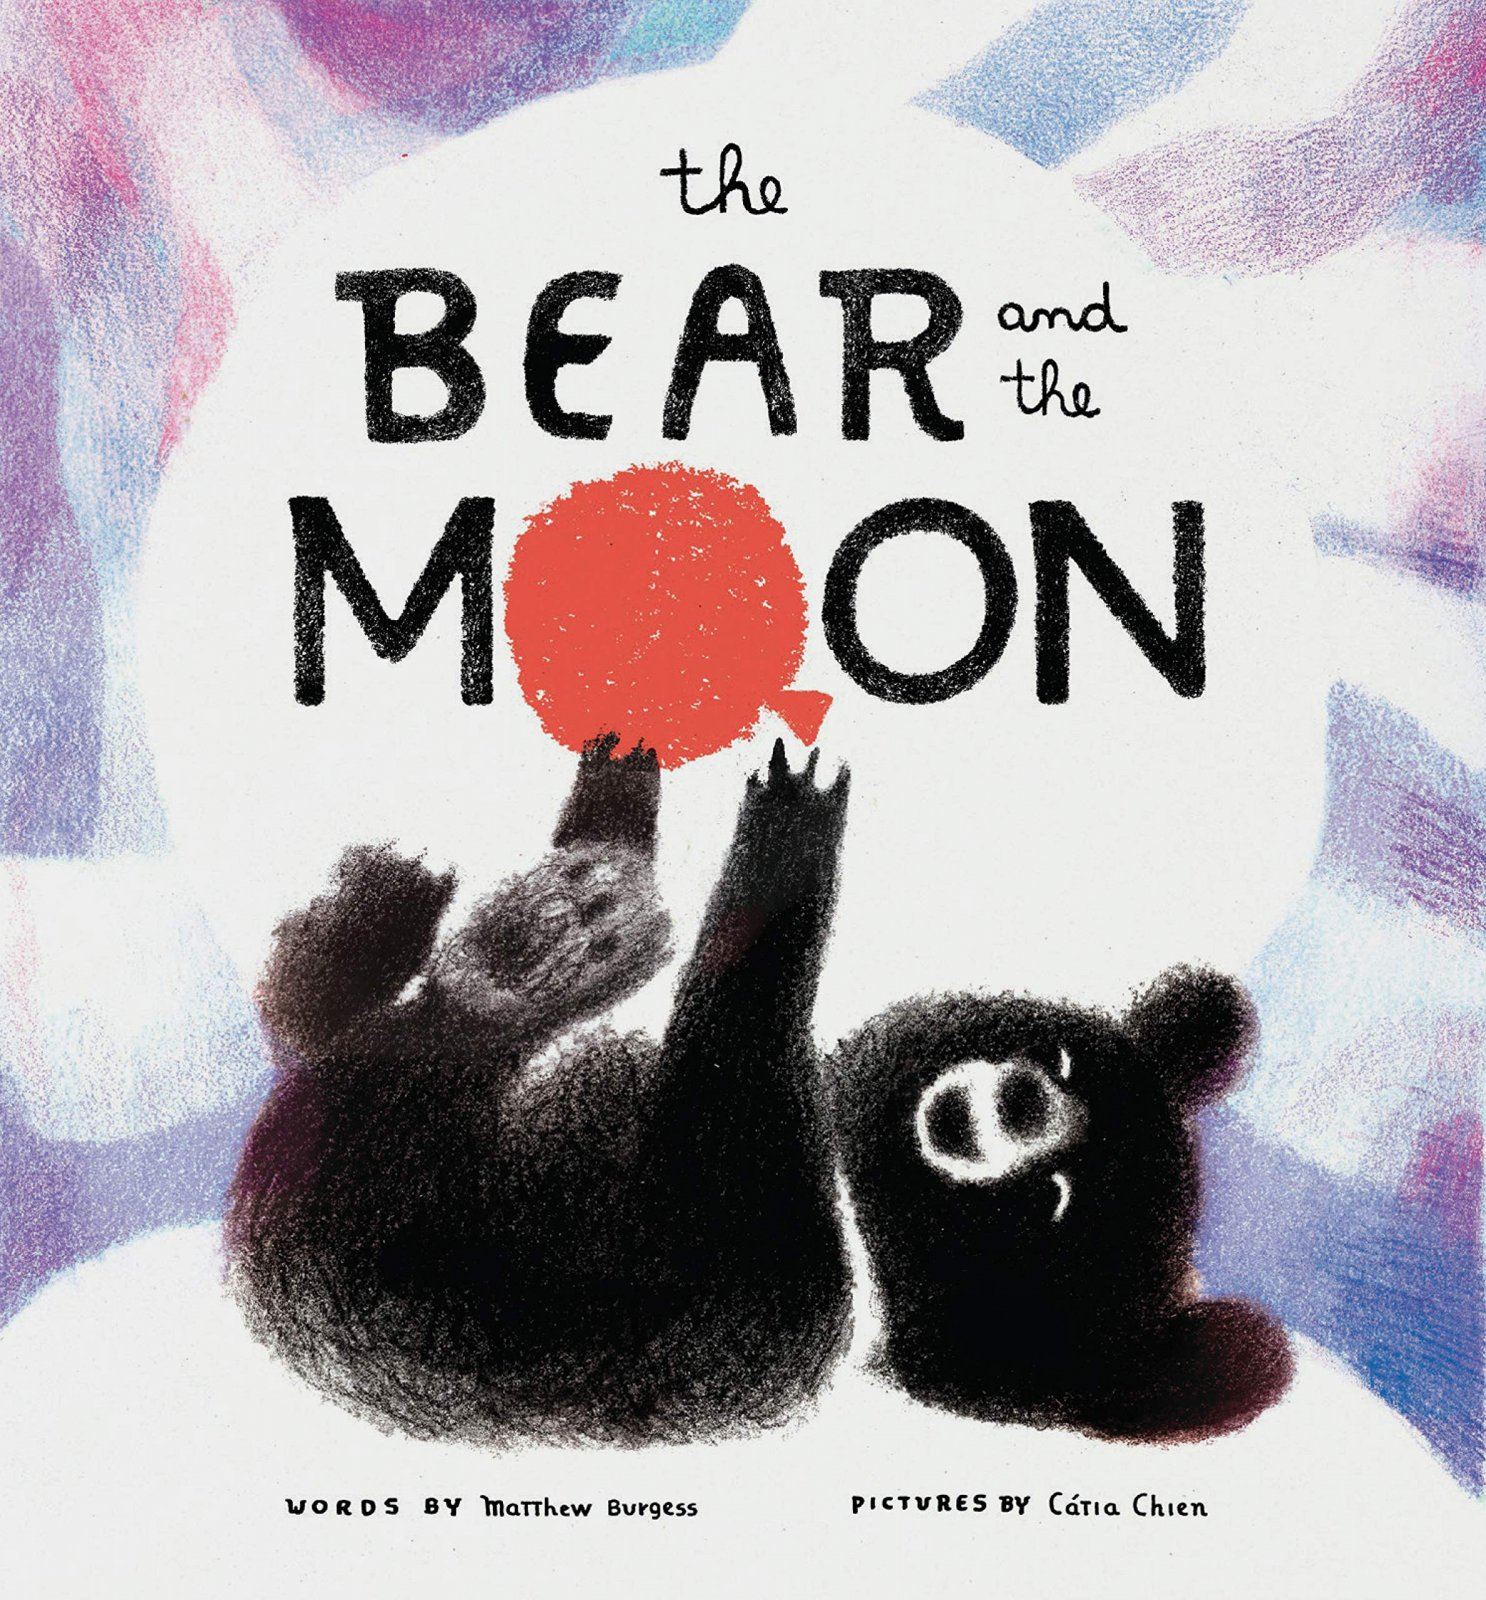 The Bear and the Moon by Mathew Burgess